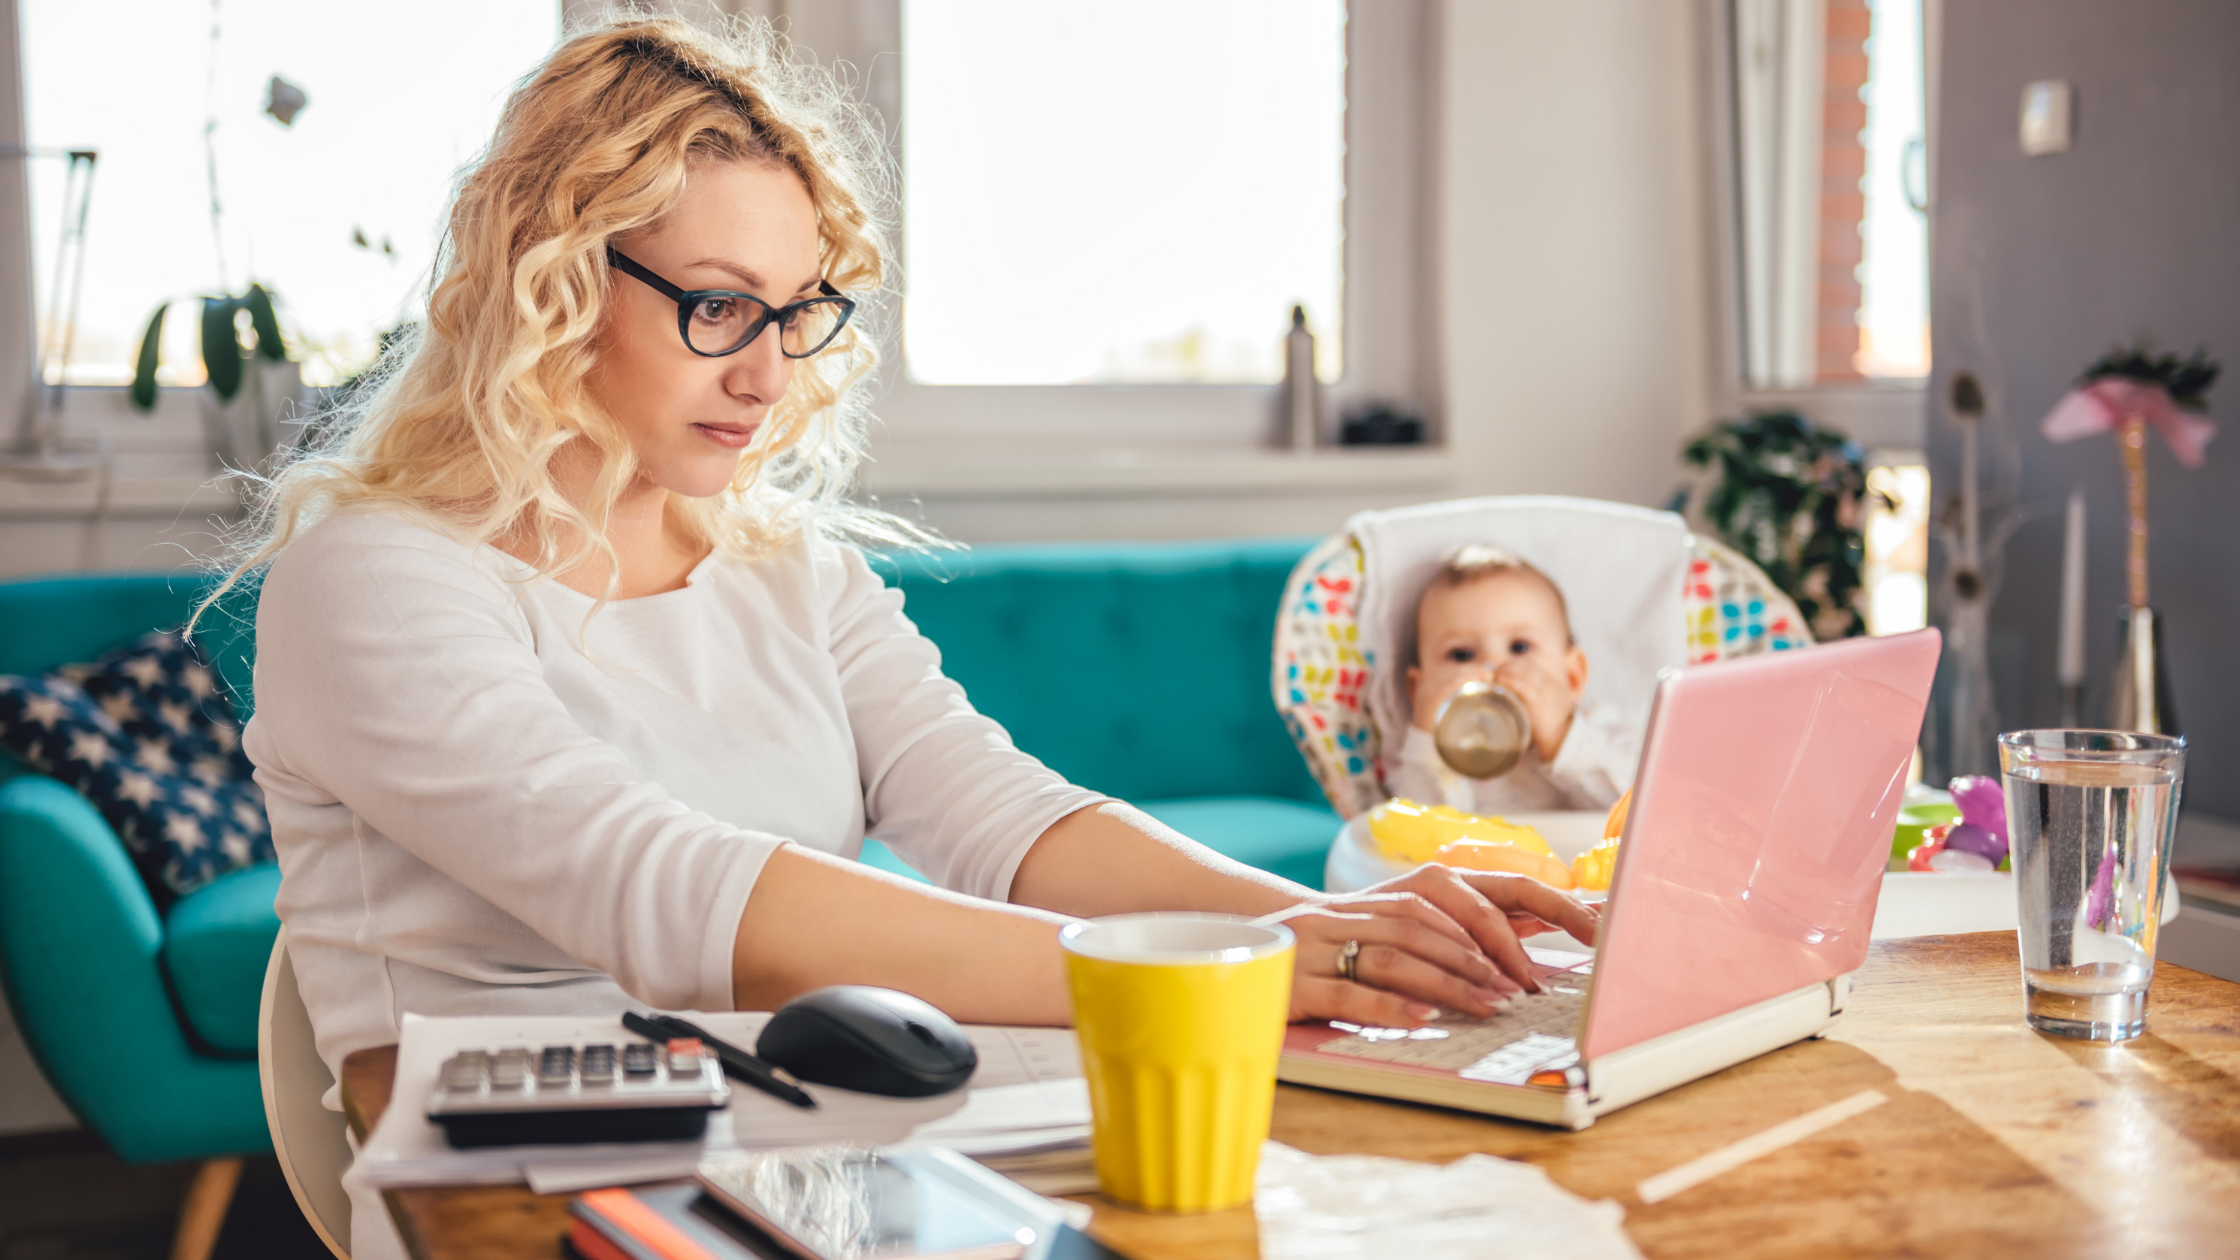 Image of woman working on kitchen table with baby in high chair.